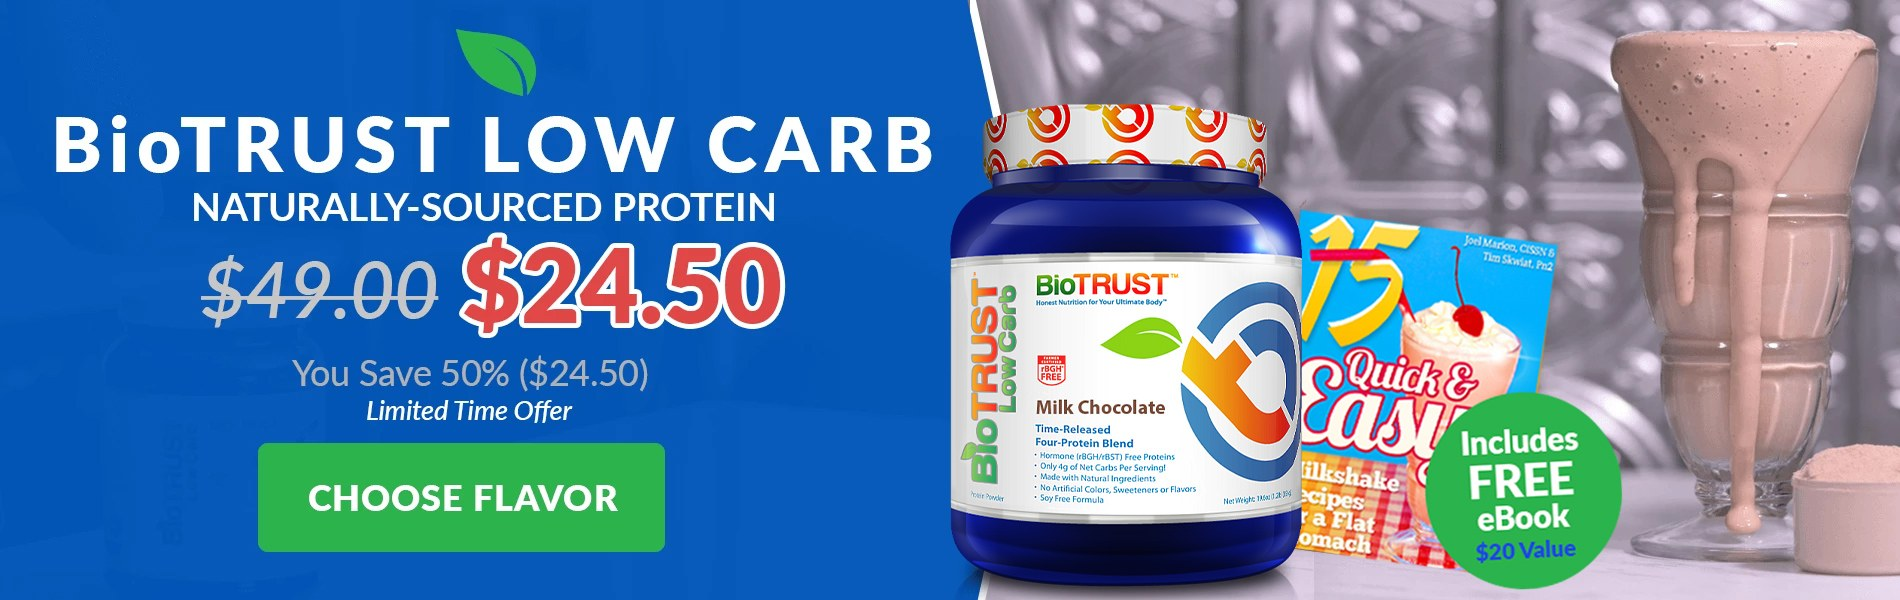 BioTRUST Low Carb Gourmet Low Carb Protein Blend